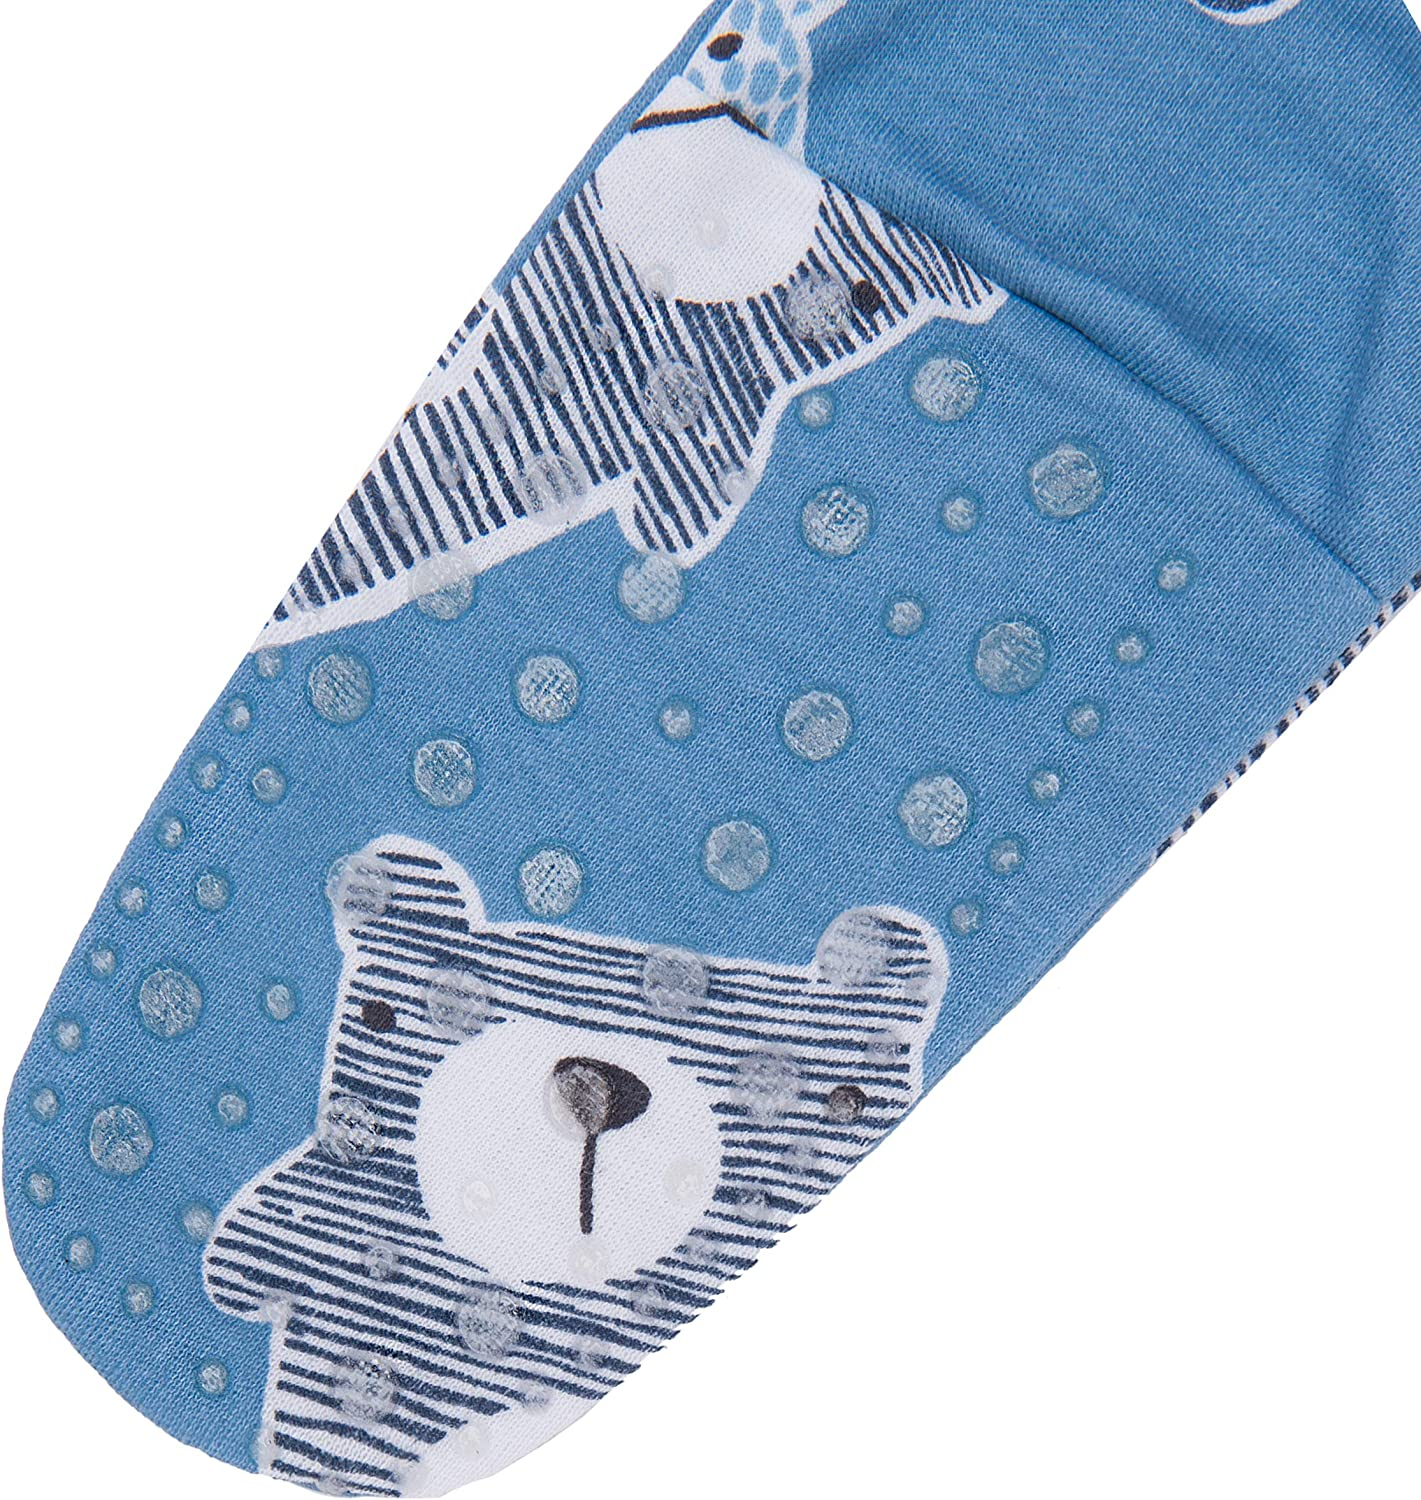 Pack of 3 SIBINULO Baby Boys Baby Girls Sleepsuit with ABS Mix Sizes 9-24 Months